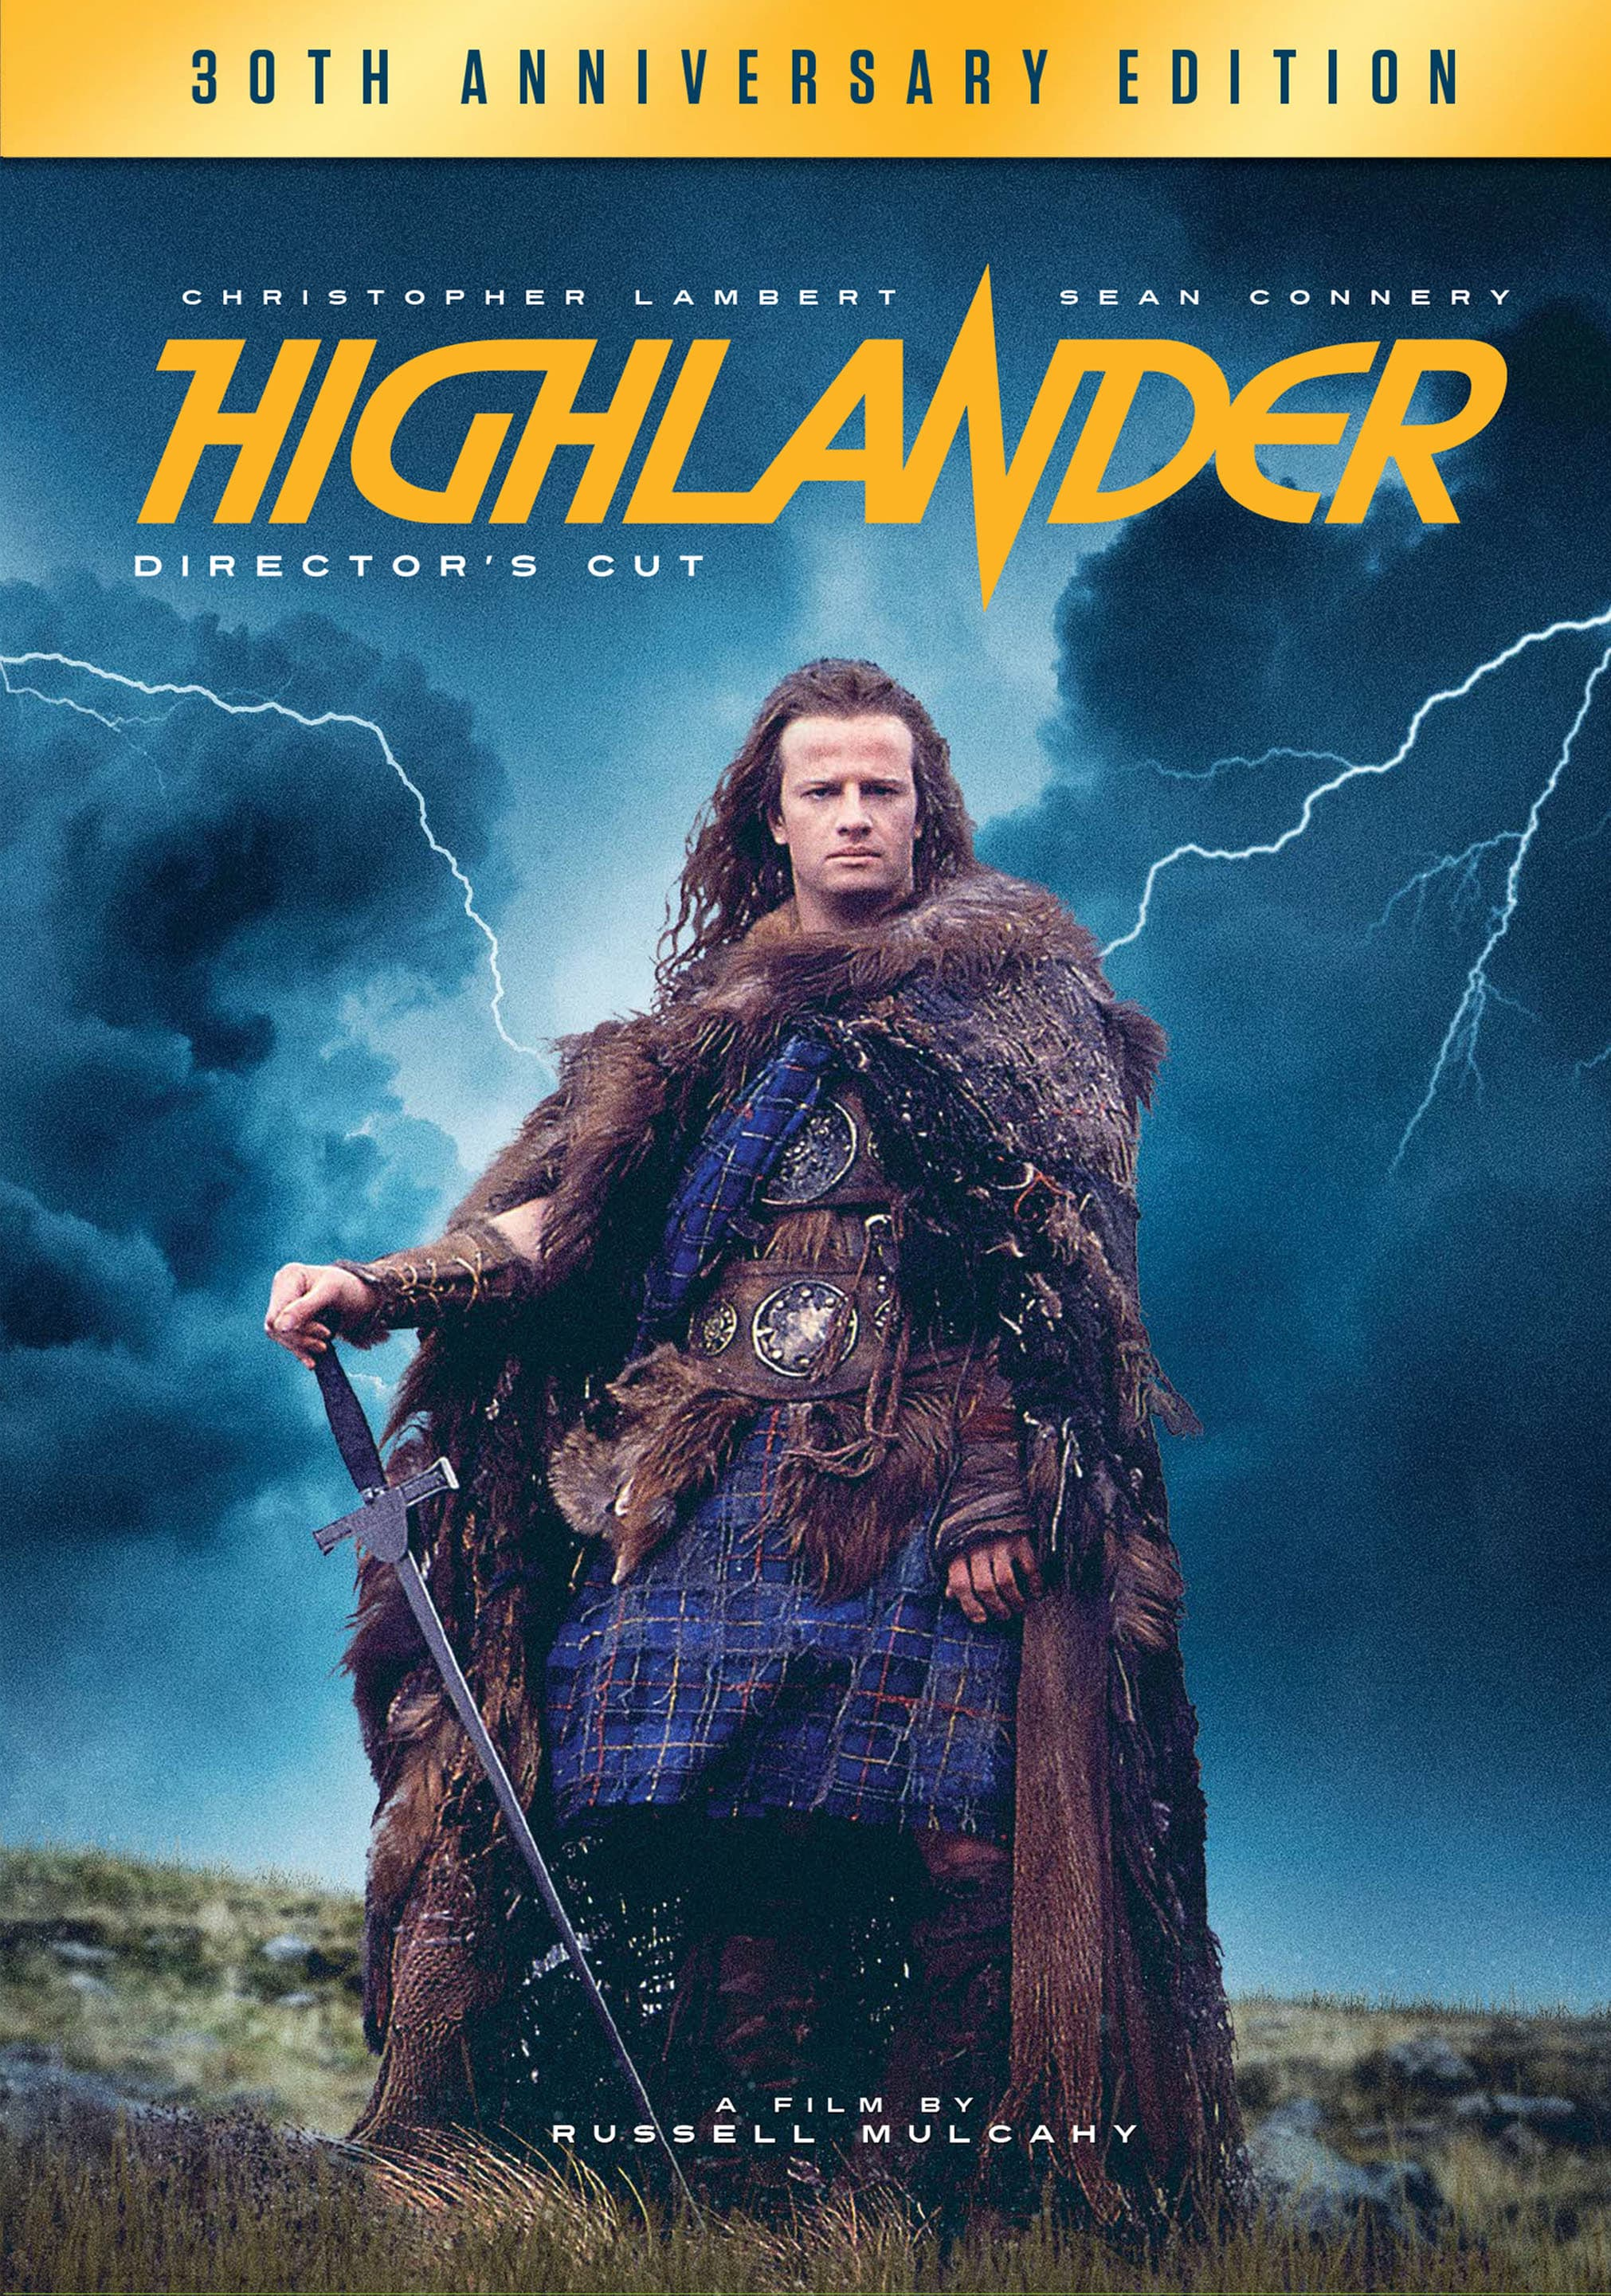 Highlander (30th Anniversary Edition) [DVD]